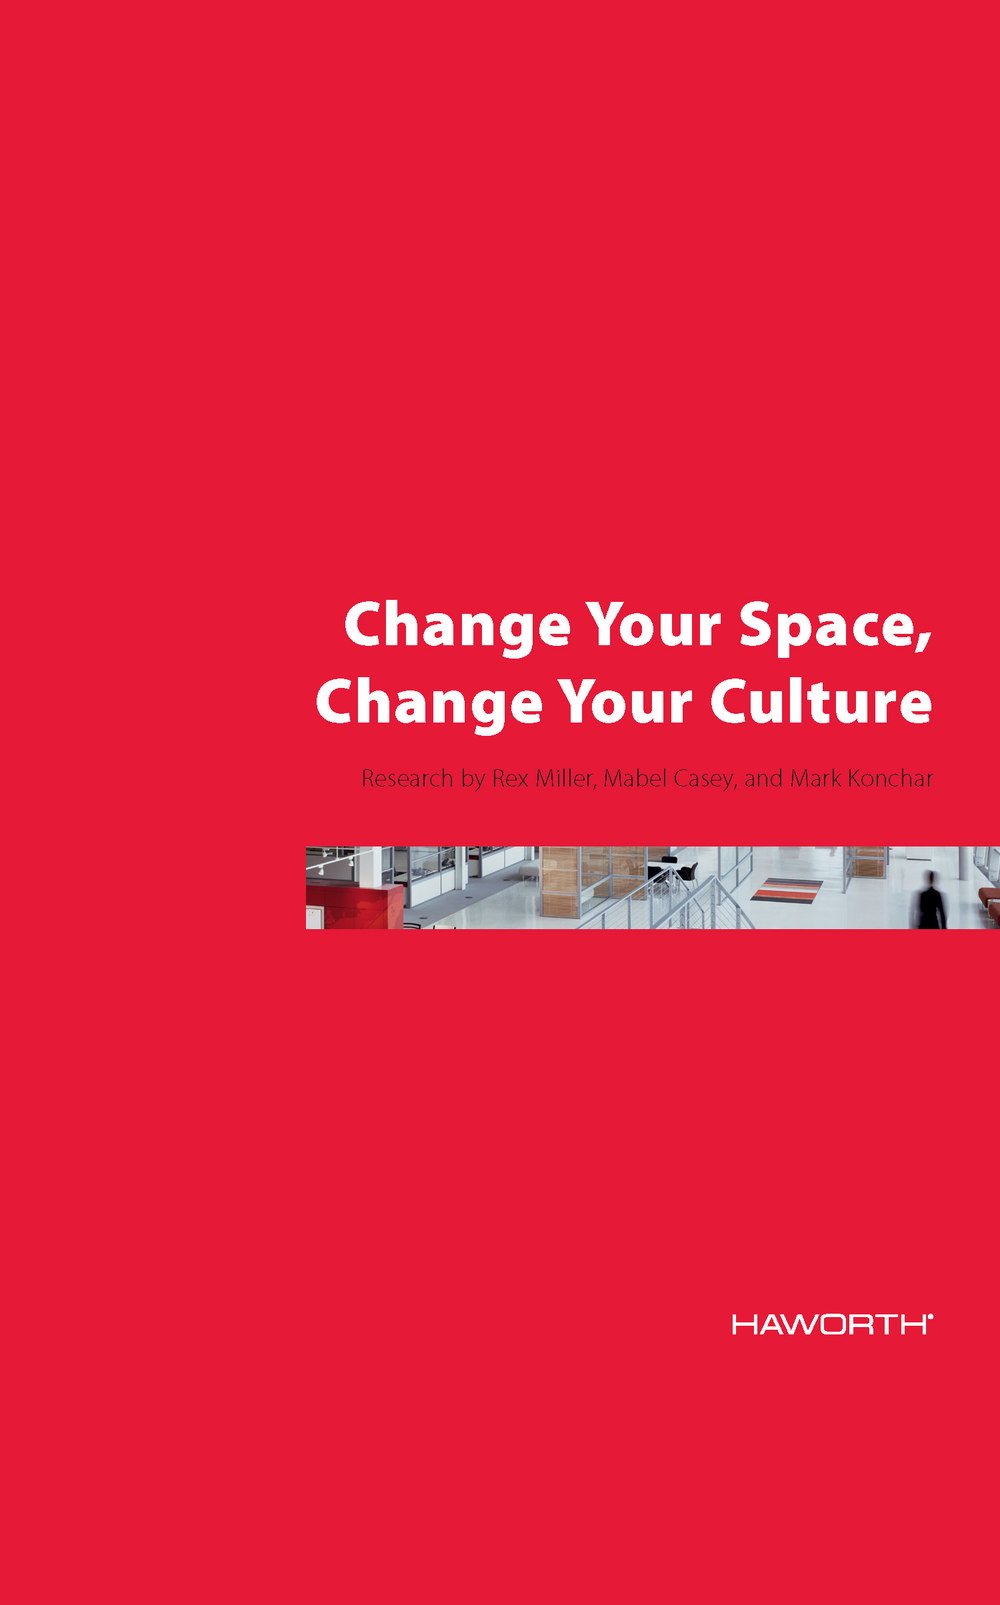 Change Your Space, Change Your Culture: courtesy of Haworth